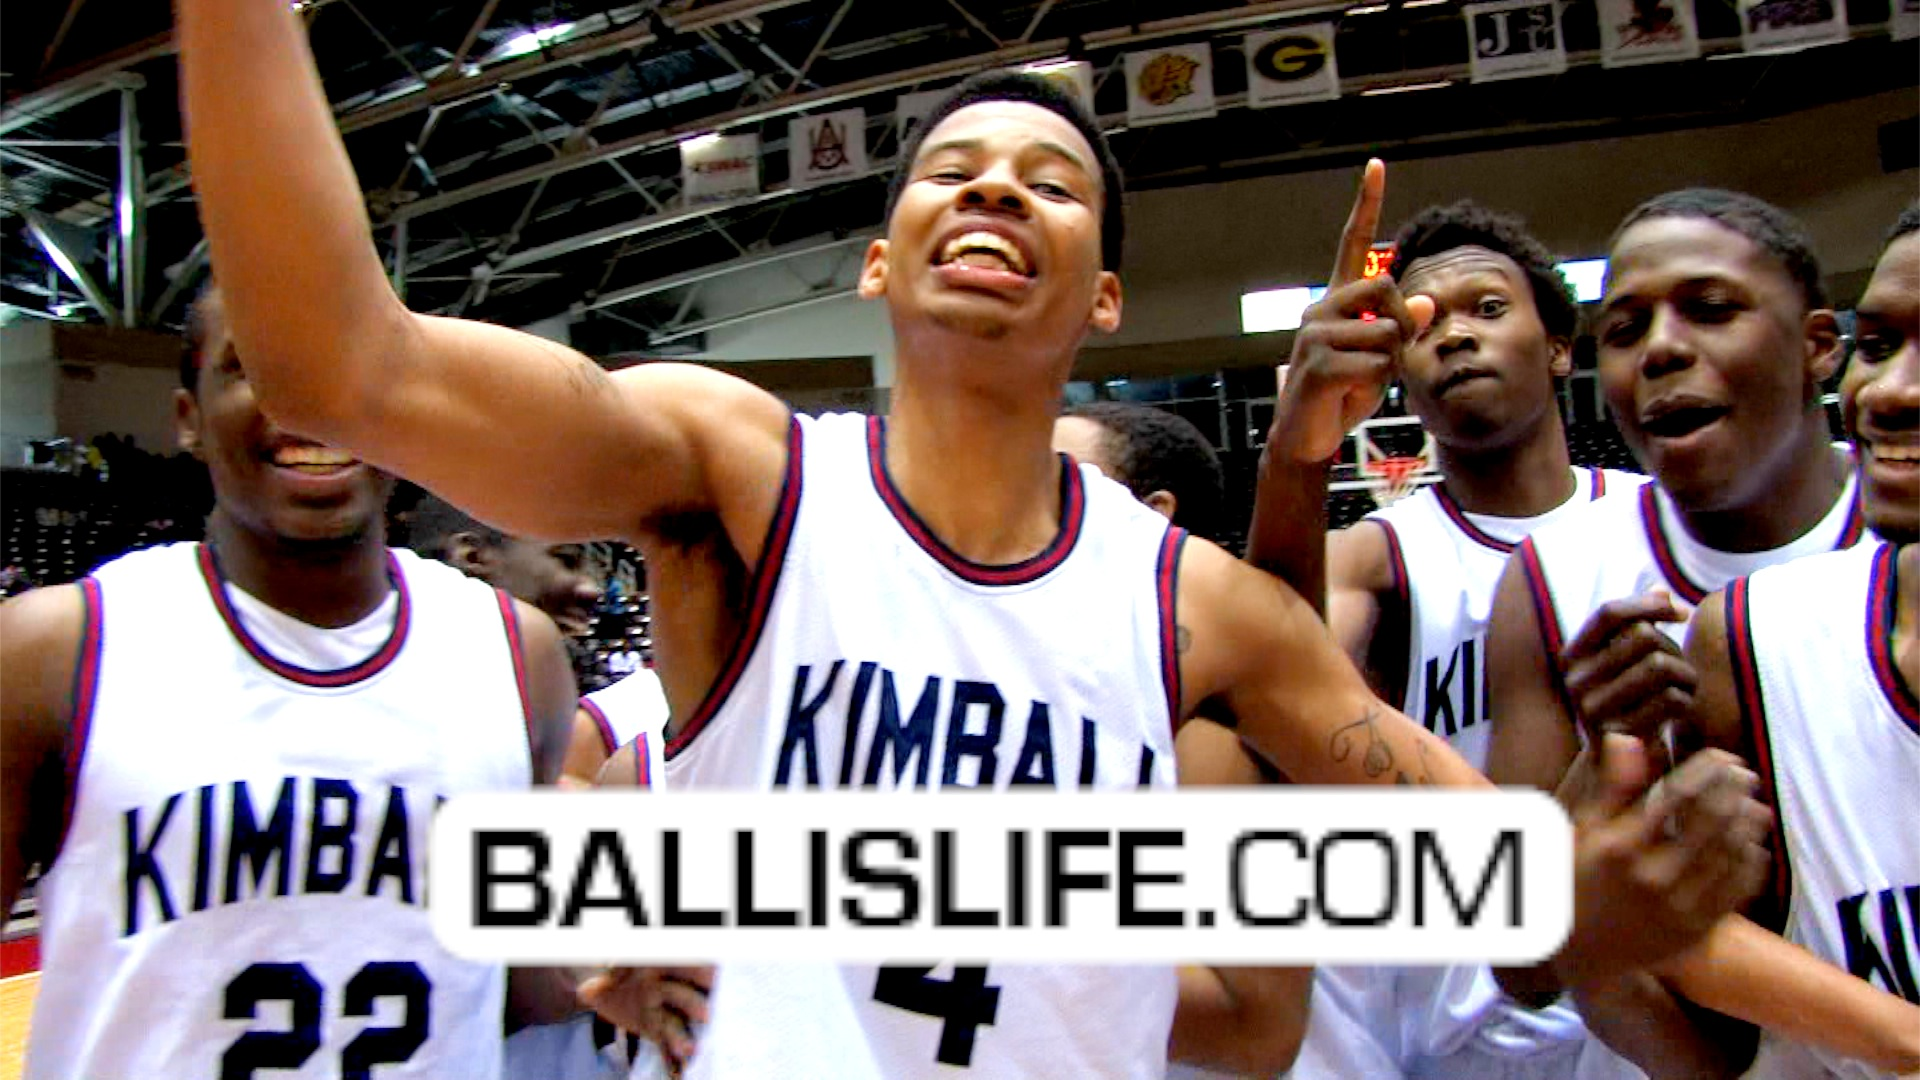 Ballislife | Keith Frazier vs SOC